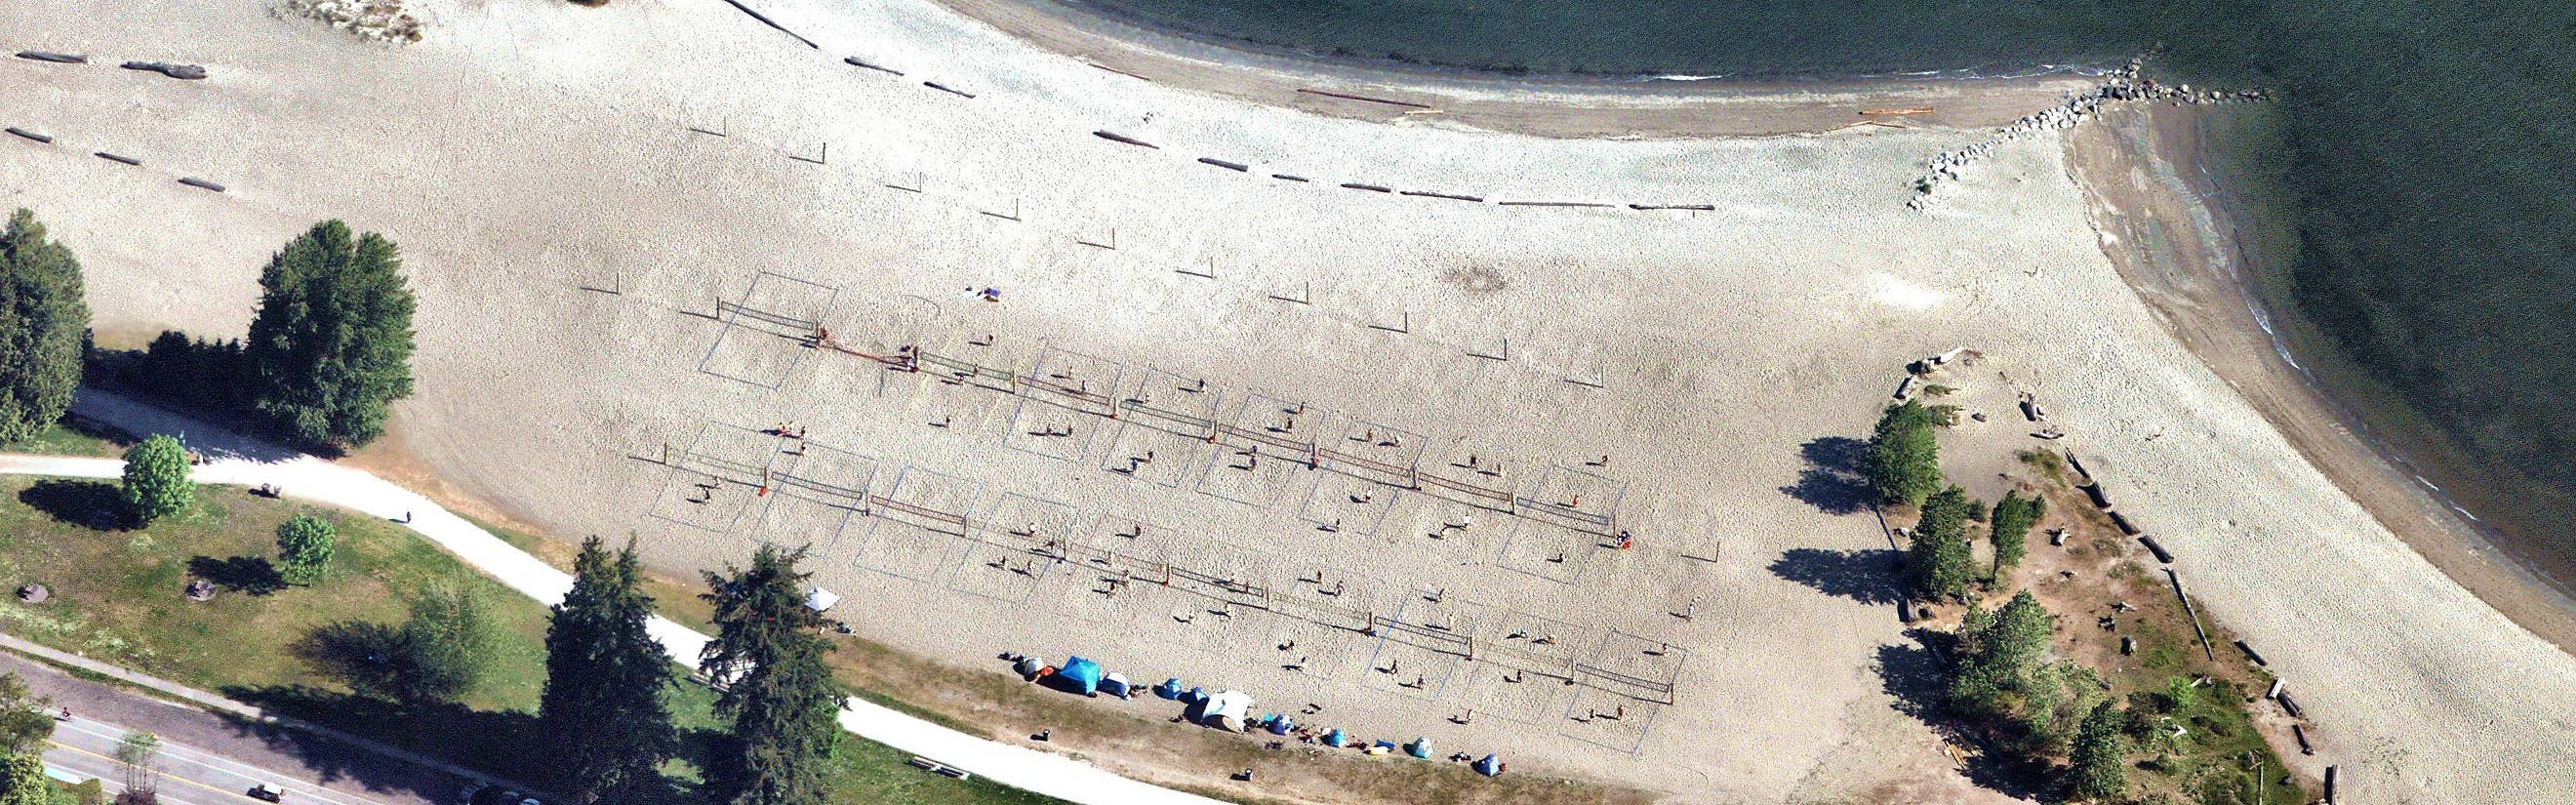 Oblique aerial imagery of beach volleyball courts on Vancouver Beach, BC - 10 May 2019